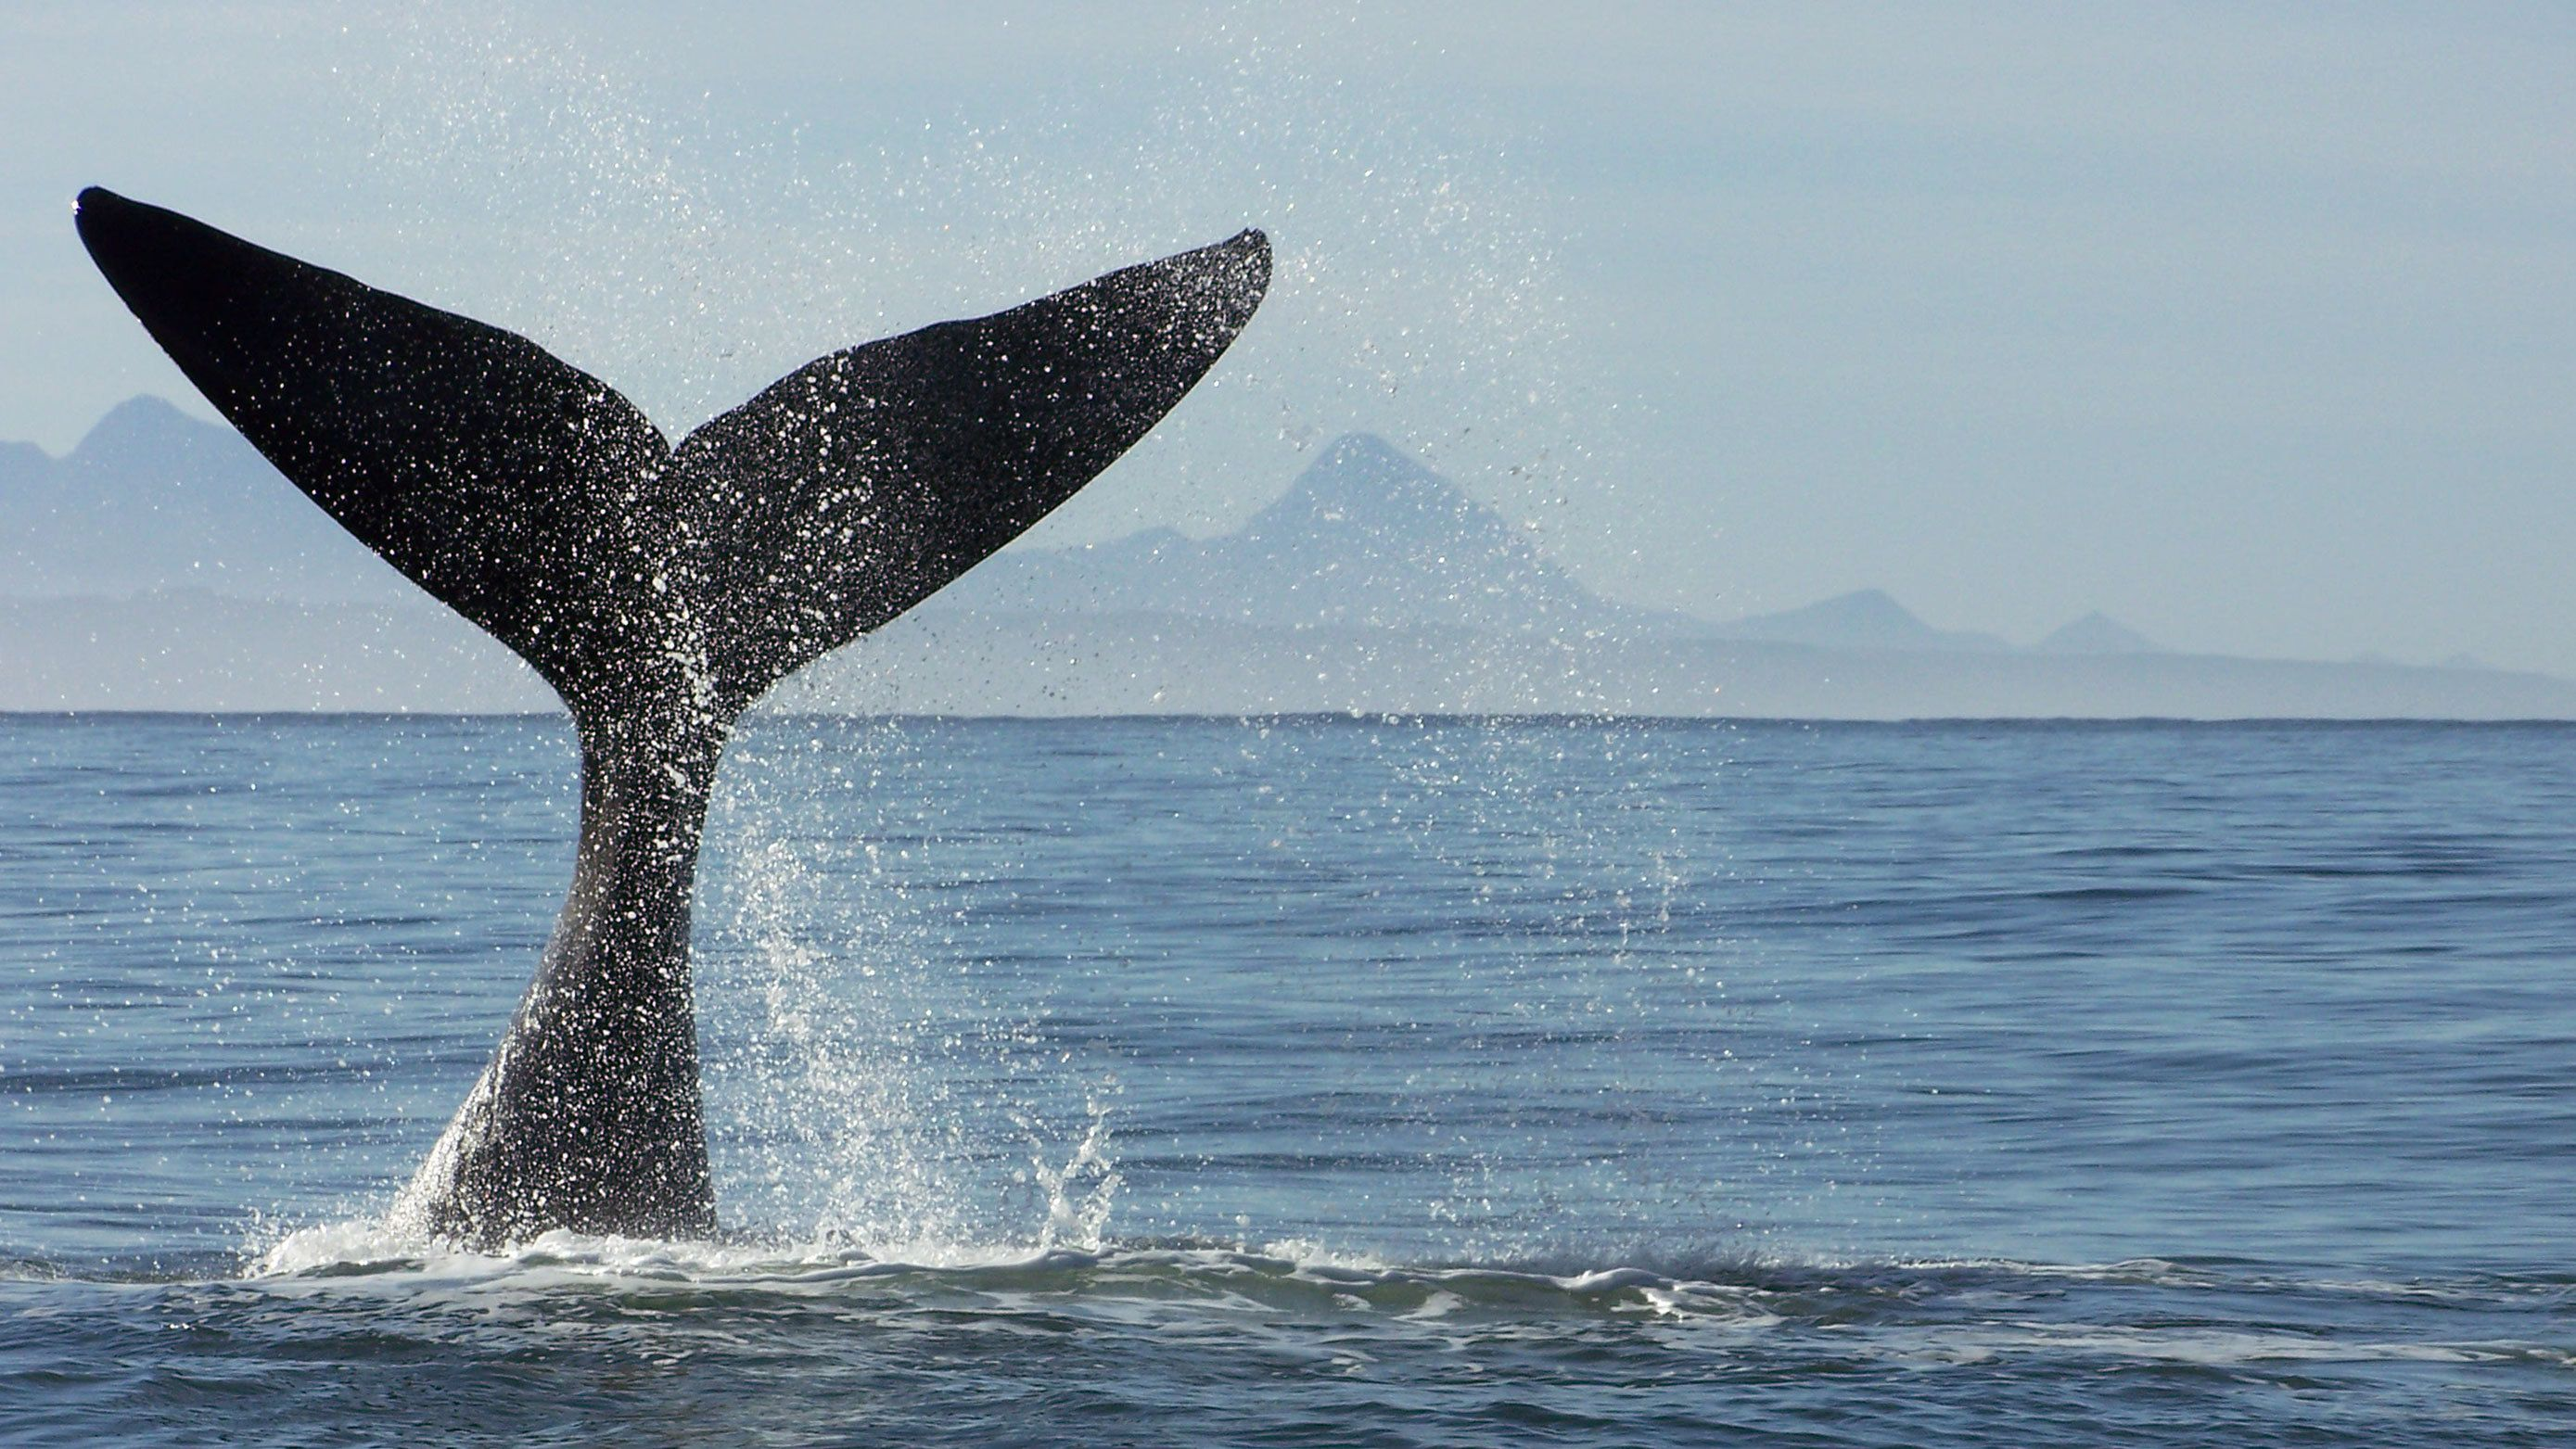 Whale tale splashing in South Africa